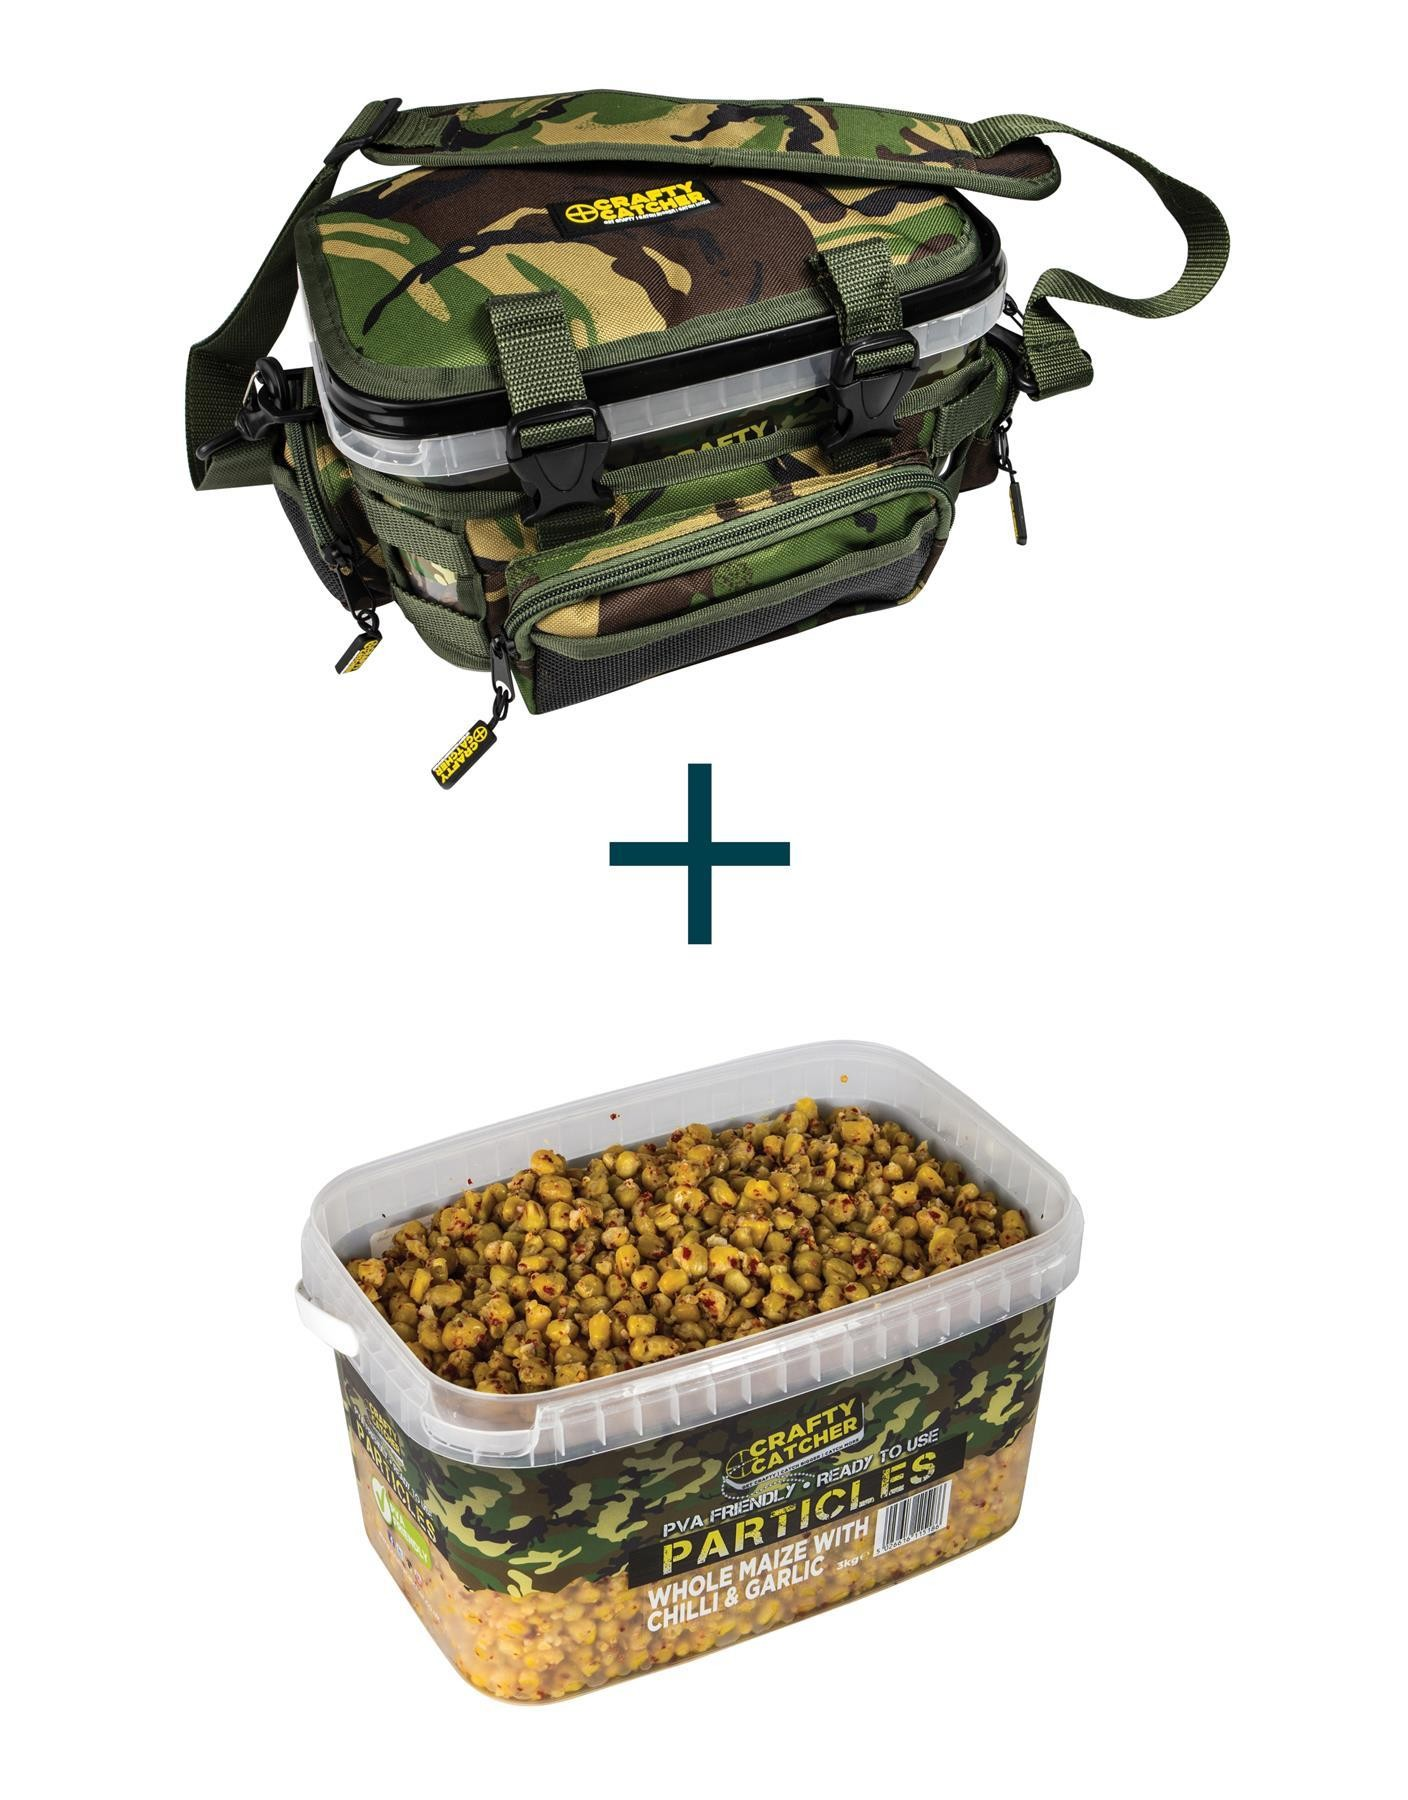 Crafty Catcher DPM Bucket Bag + Whole Maize with Chilli Particle Bucket 3kg